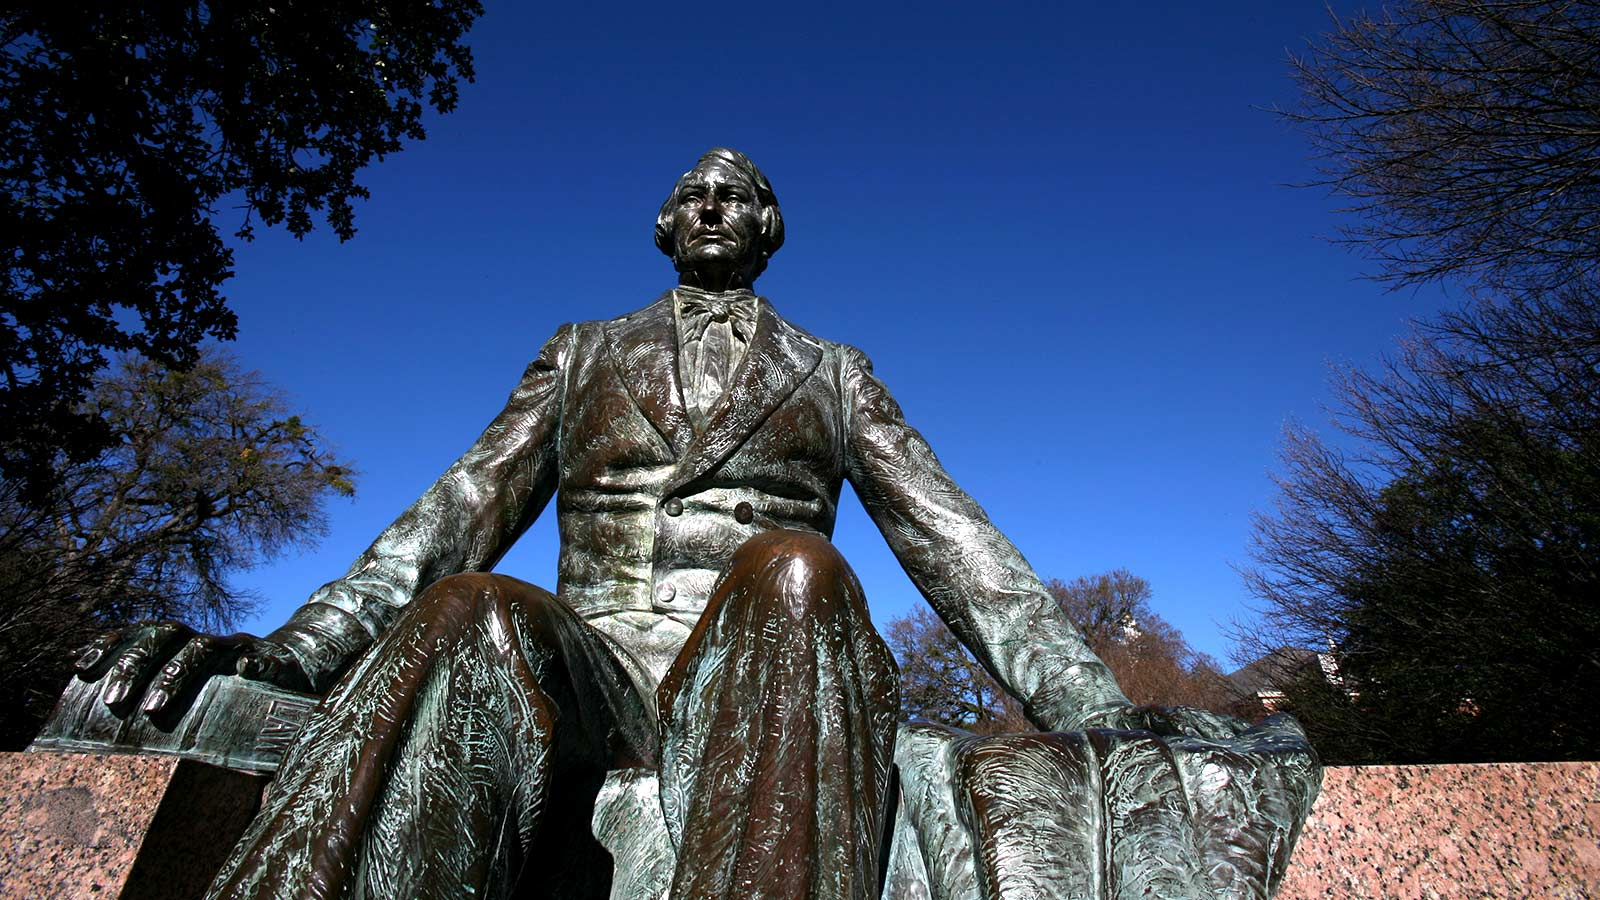 The statue of Judge R.E.B. Baylor was unveiled on Feb. 1, 1939, and and honors the university's namesake.